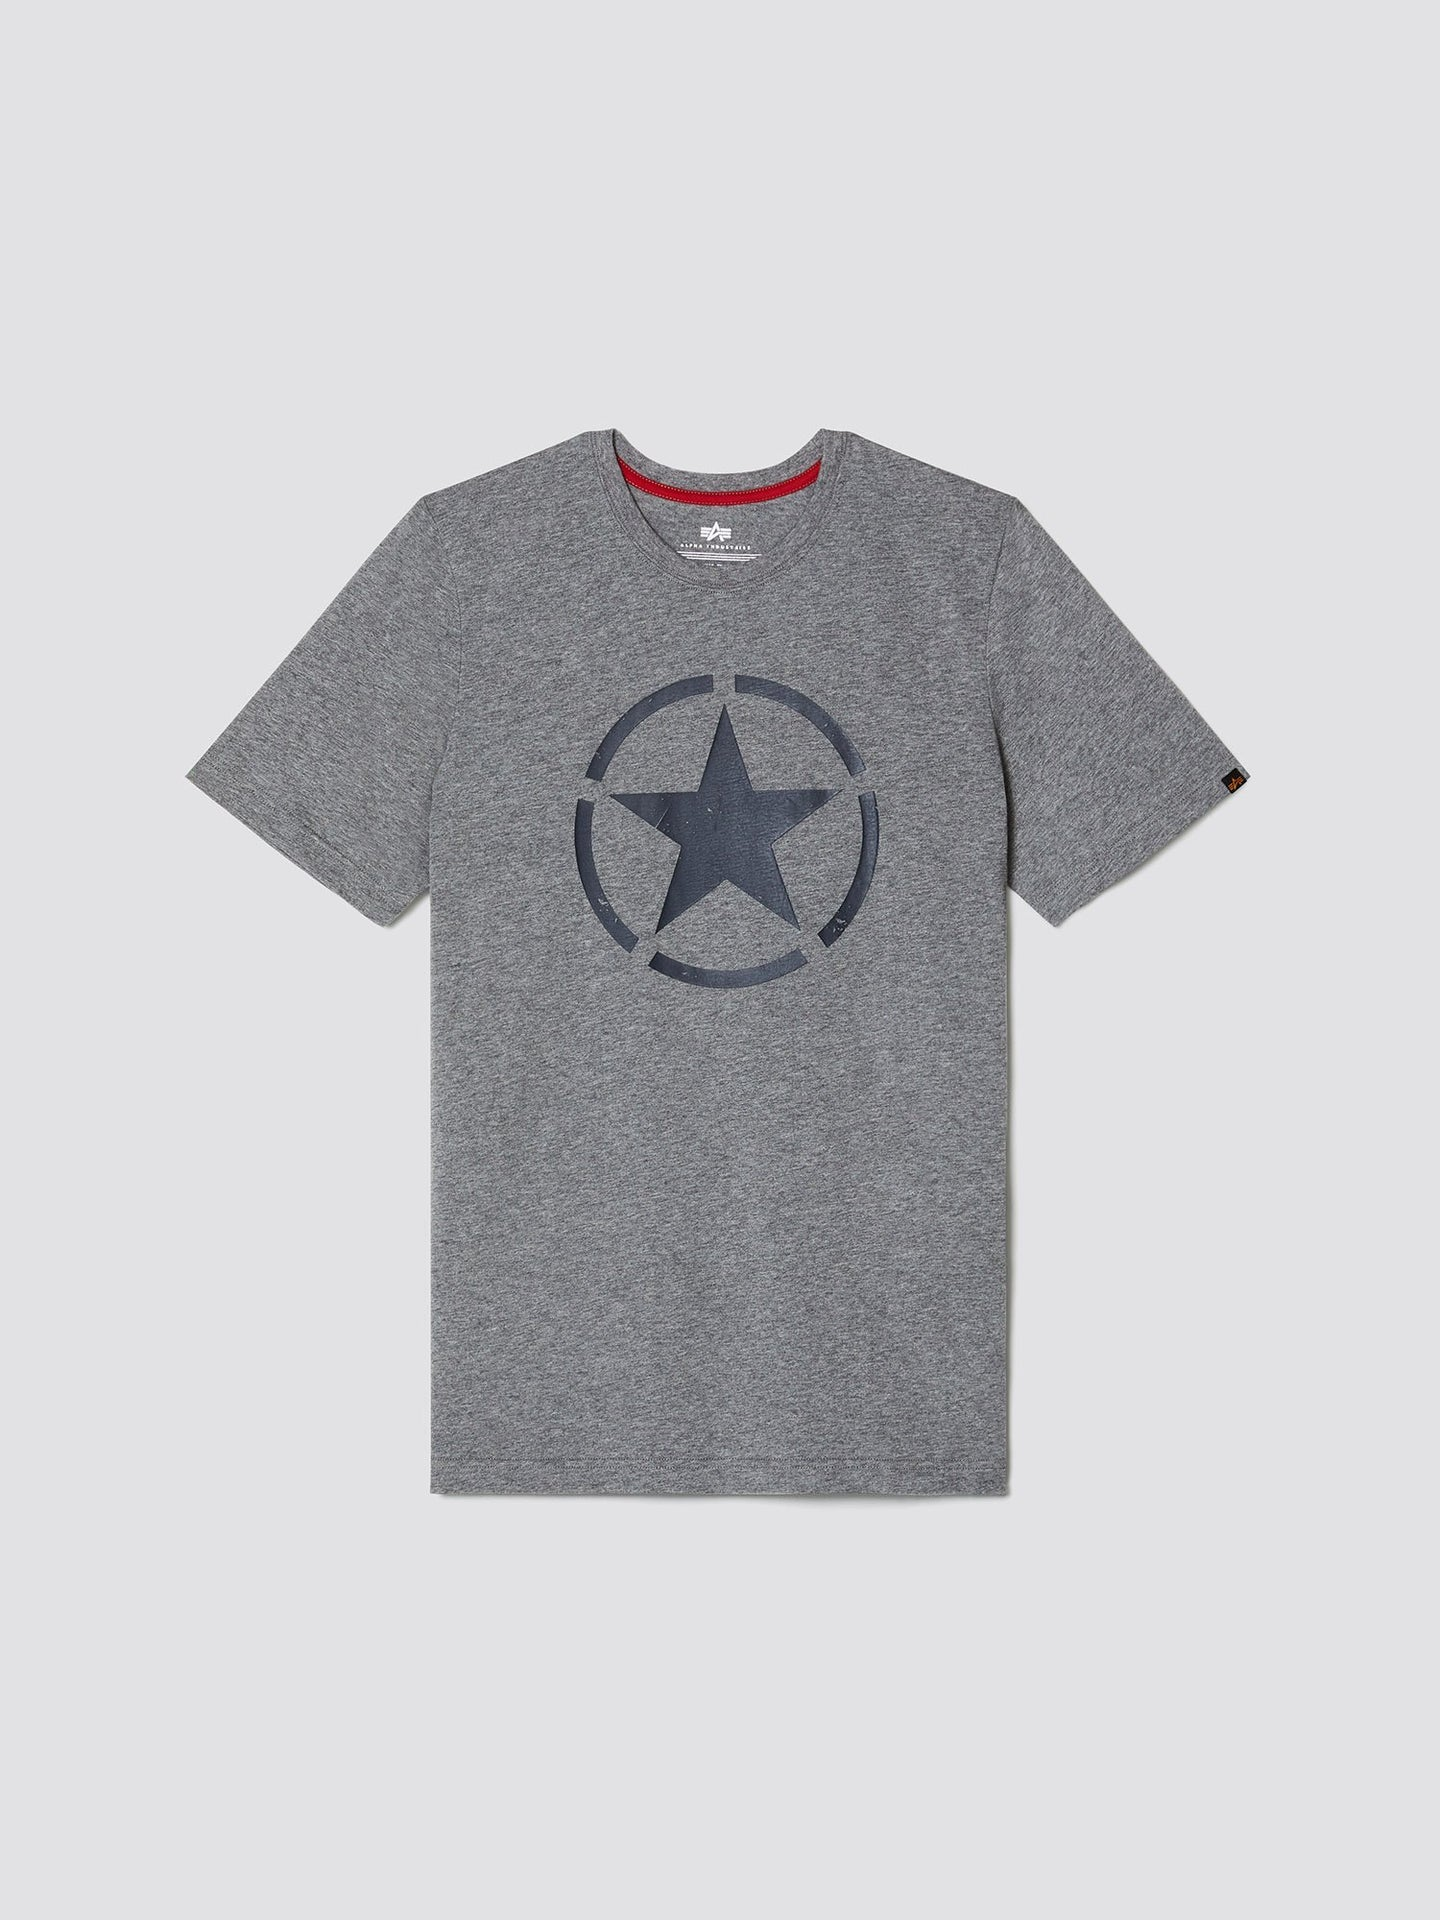 STAR TEE SALE Alpha Industries, Inc. MEDIUM CHARCOAL HEATHER 2XL